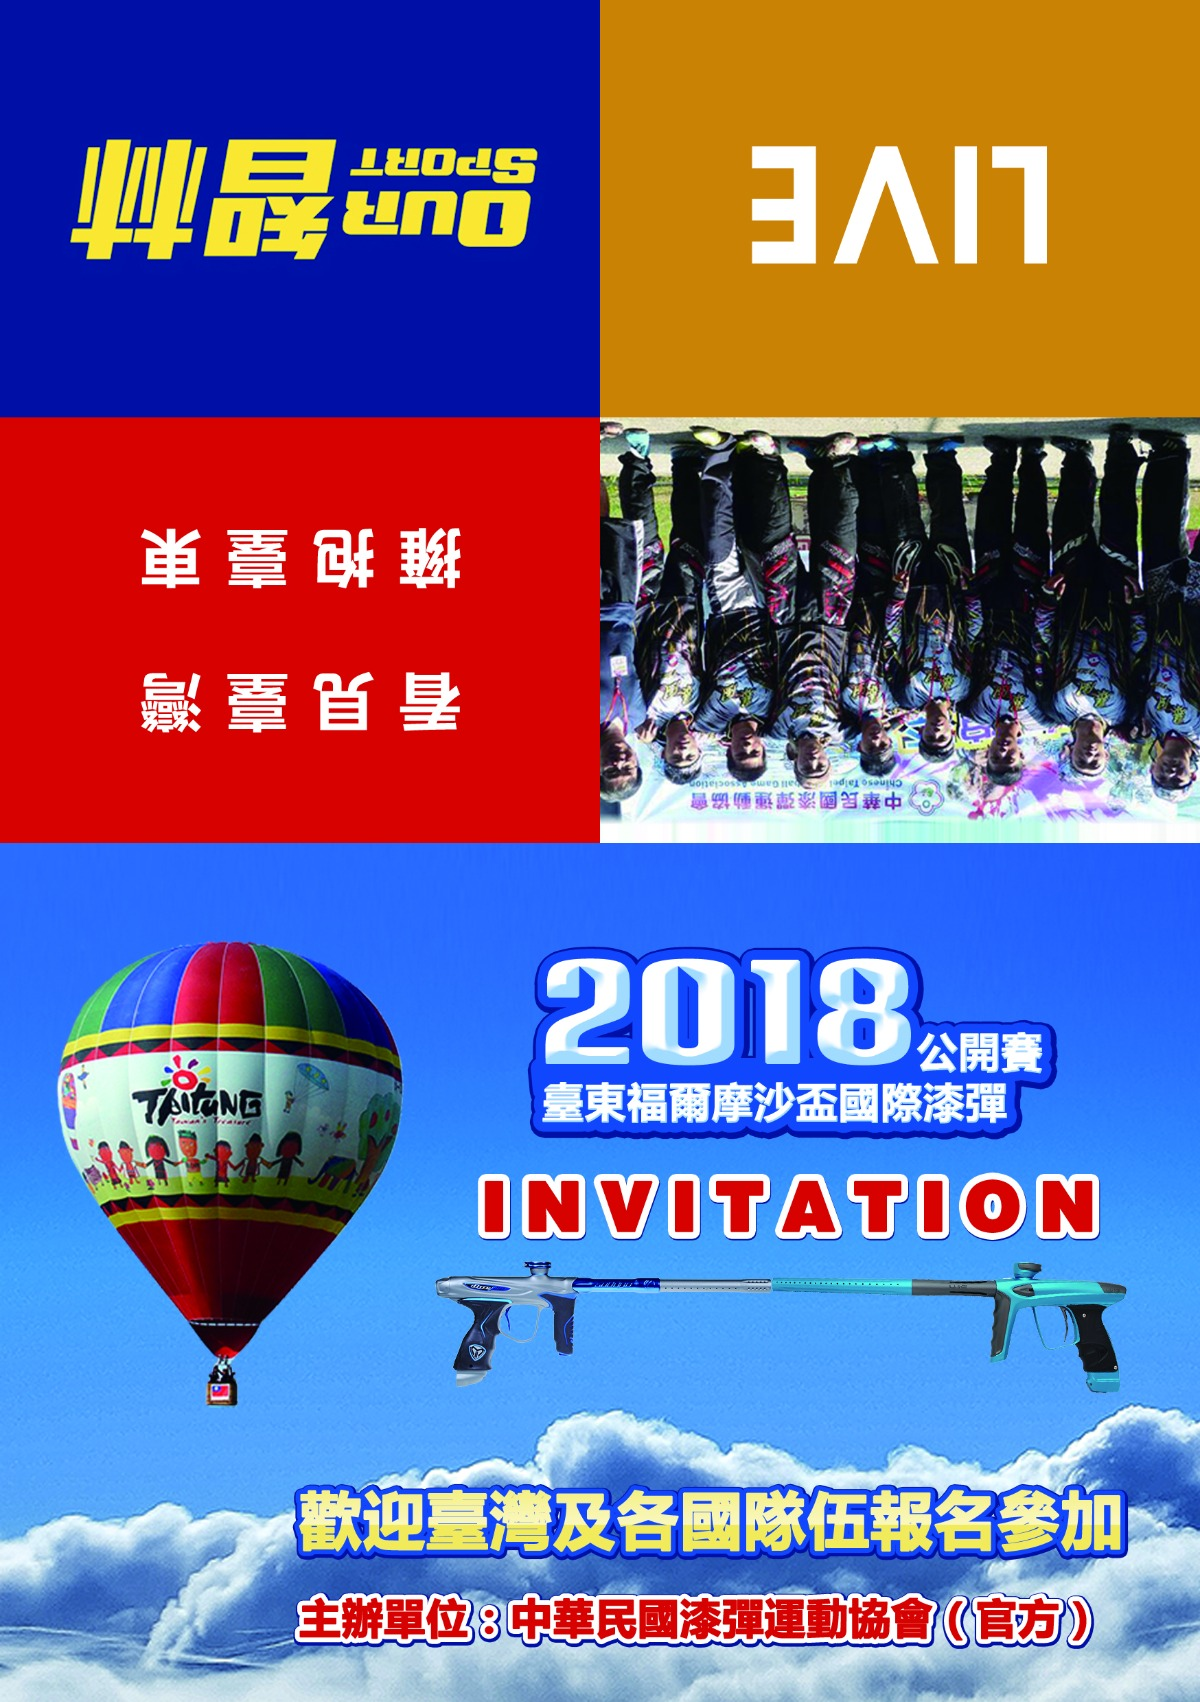 2018 Taitung FORMOSA open international paintball tournment-Invitation card cover